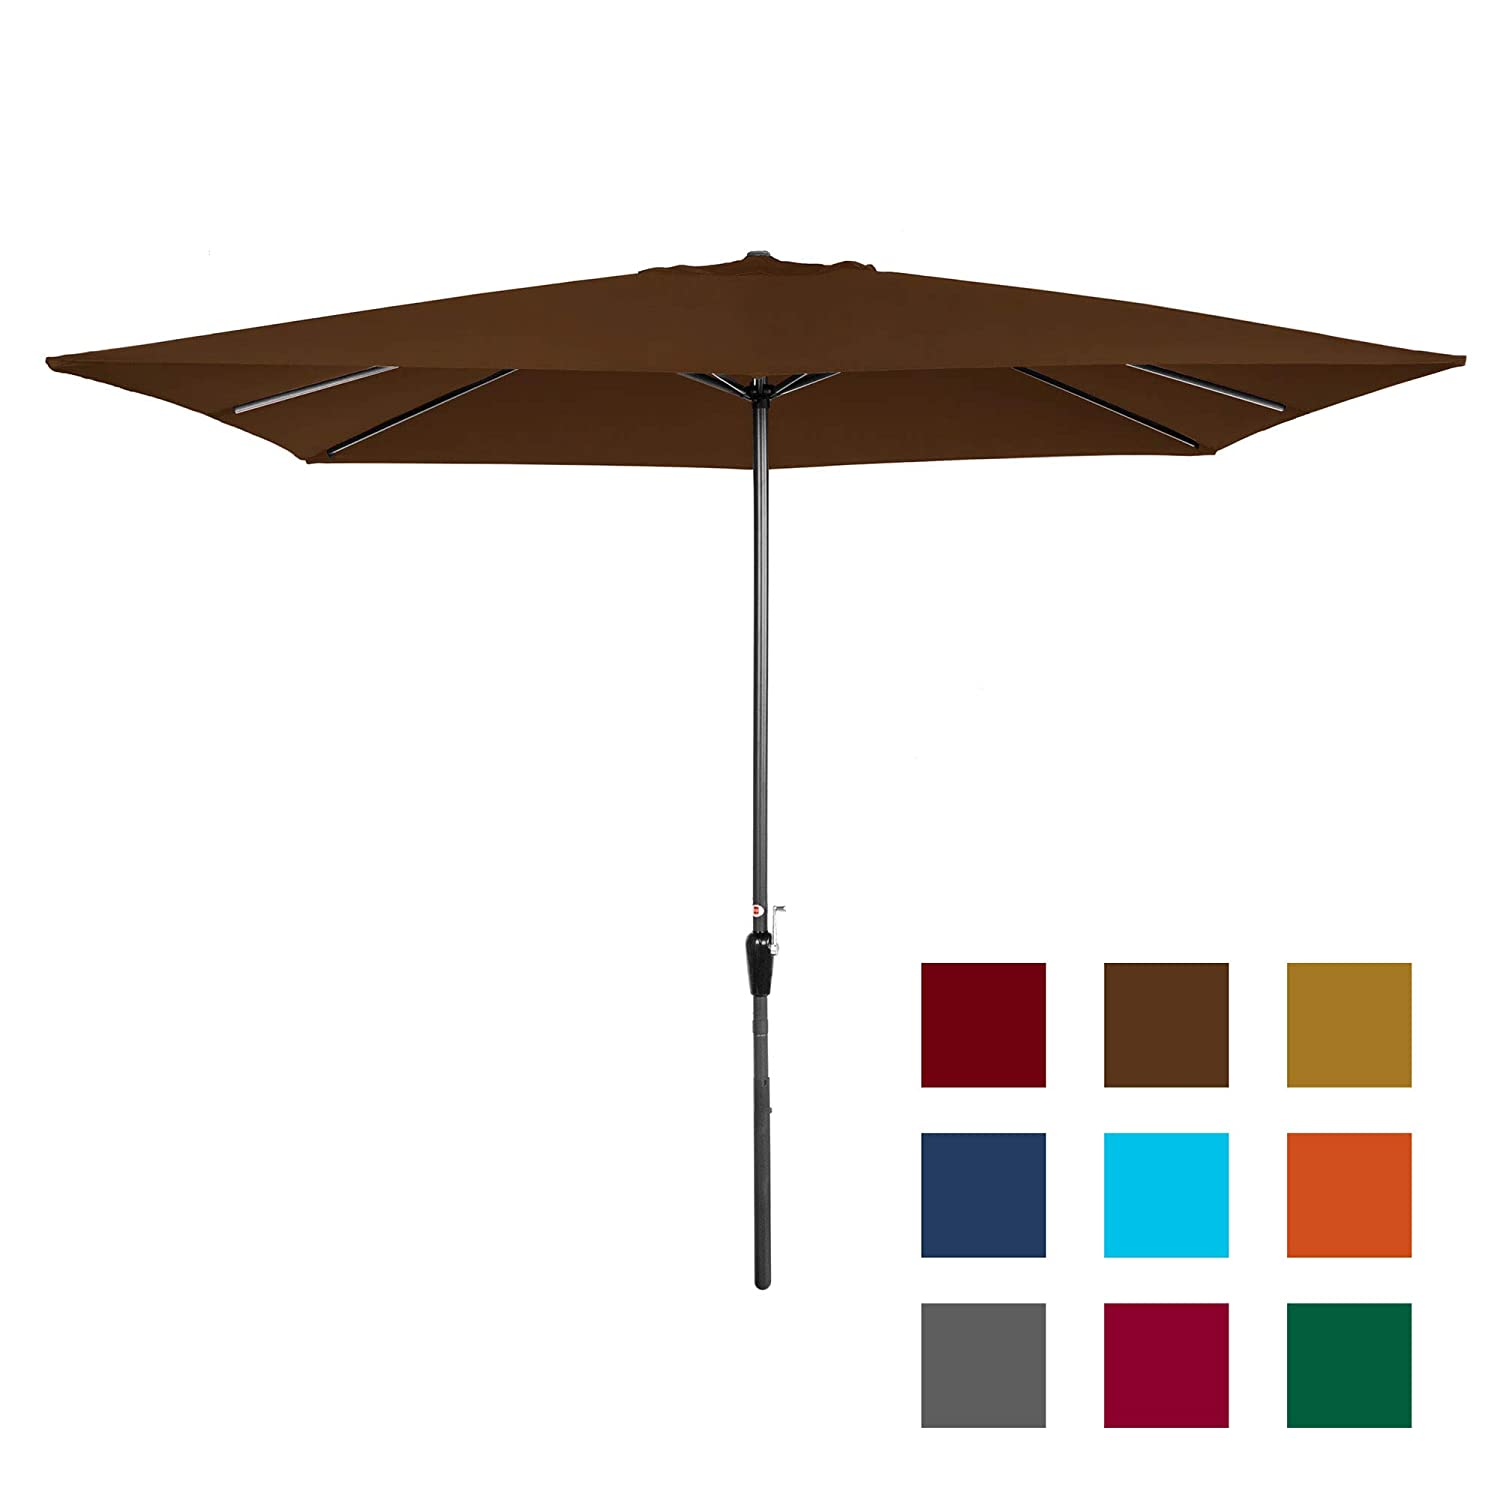 Best Choice Products 8x11ft Rectangular Patio Umbrella w Crank, Fade-Resistant 210G Polyester Fabric – Brown